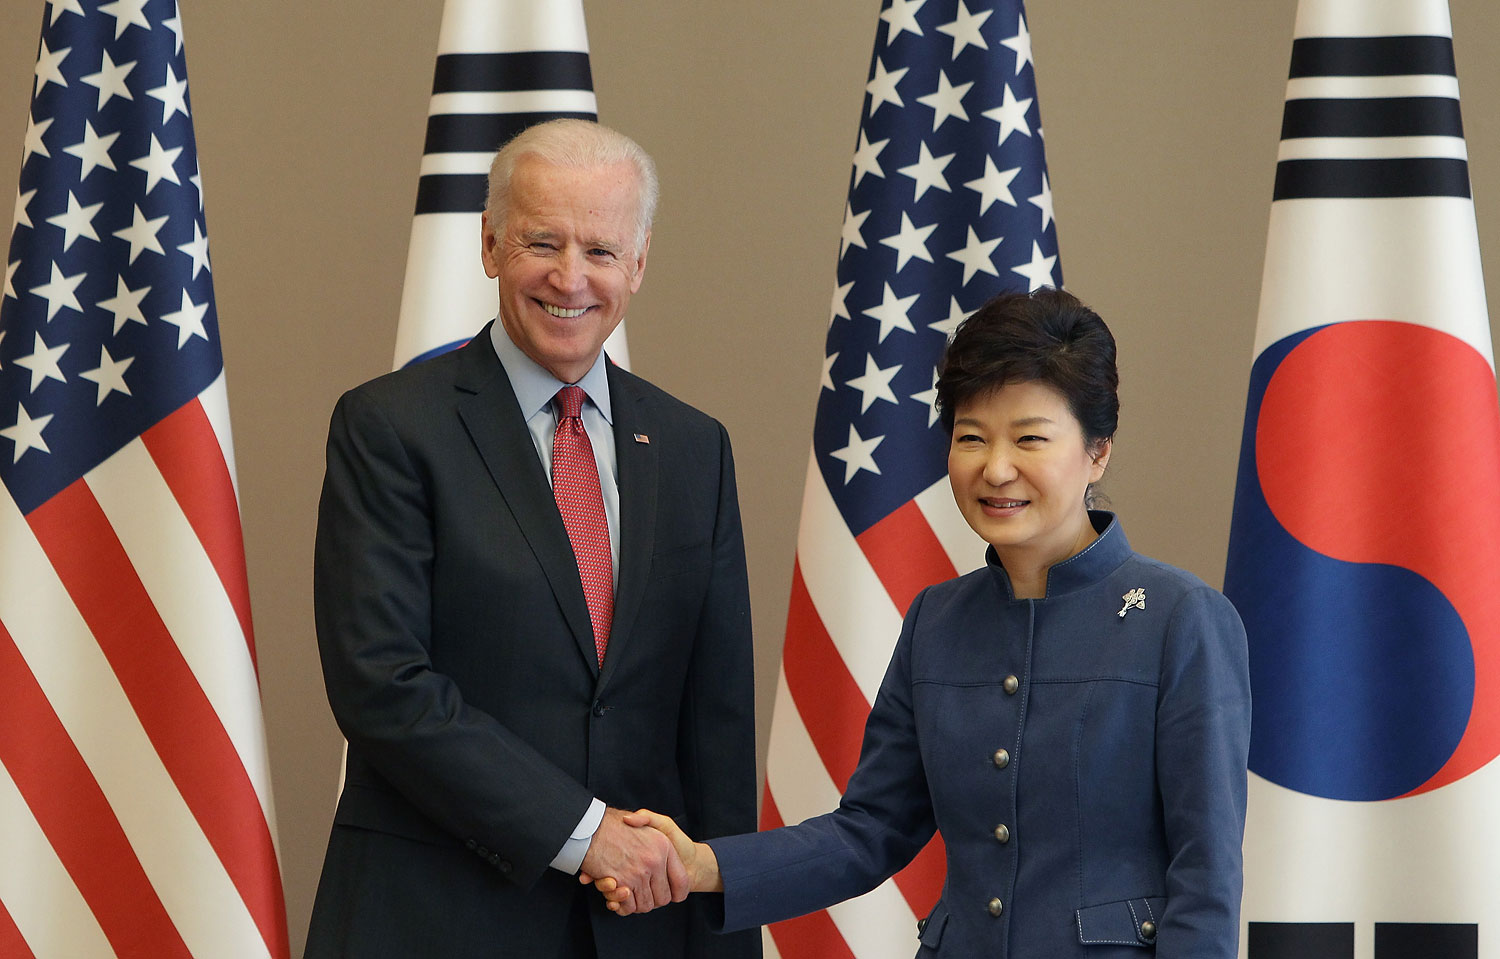 U.S. Vice President Joe Biden shakes hands with South Korean President Park Geun-Hye, right, during their meeting at presidentisl house on Dec. 6, 2013 in Seoul, South Korea to discuss, among other things, the Trans-Pacific Partnership.